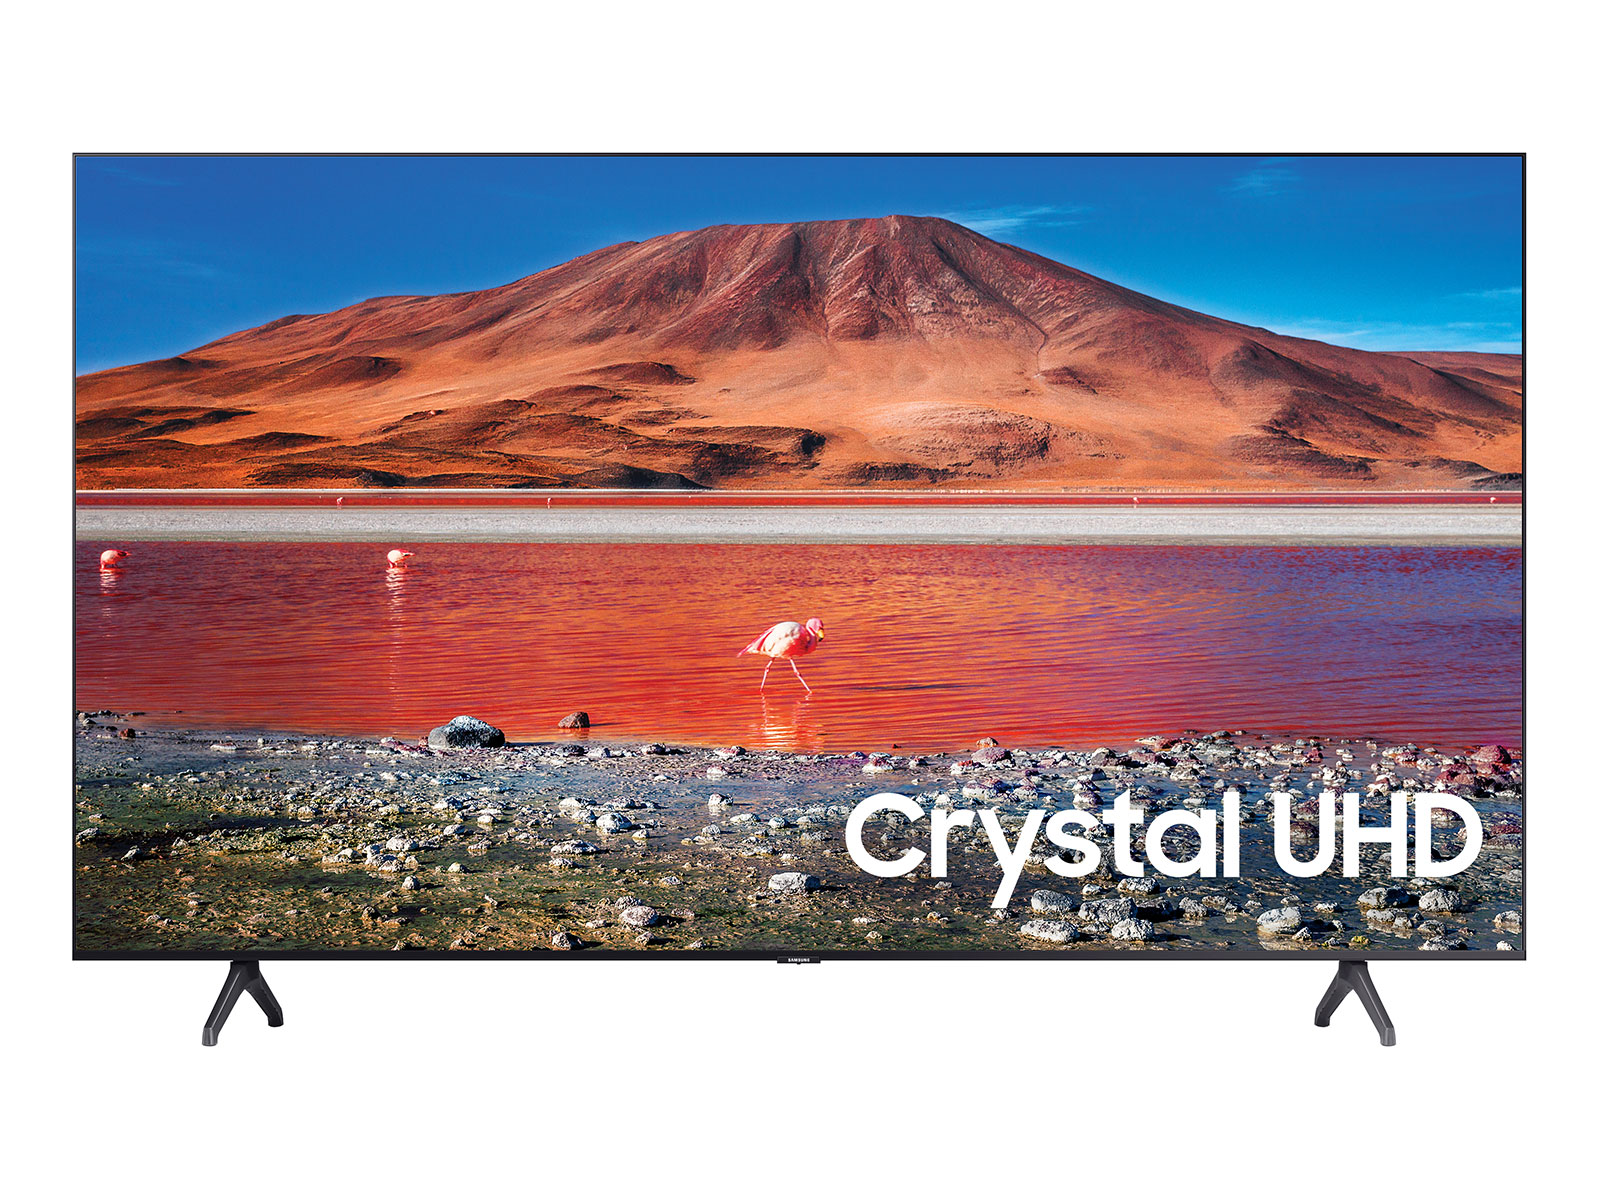 Samsung 70 TU7000 Crystal UHD 4K Smart TV with HDR, UN70TU7000FXZA 2020